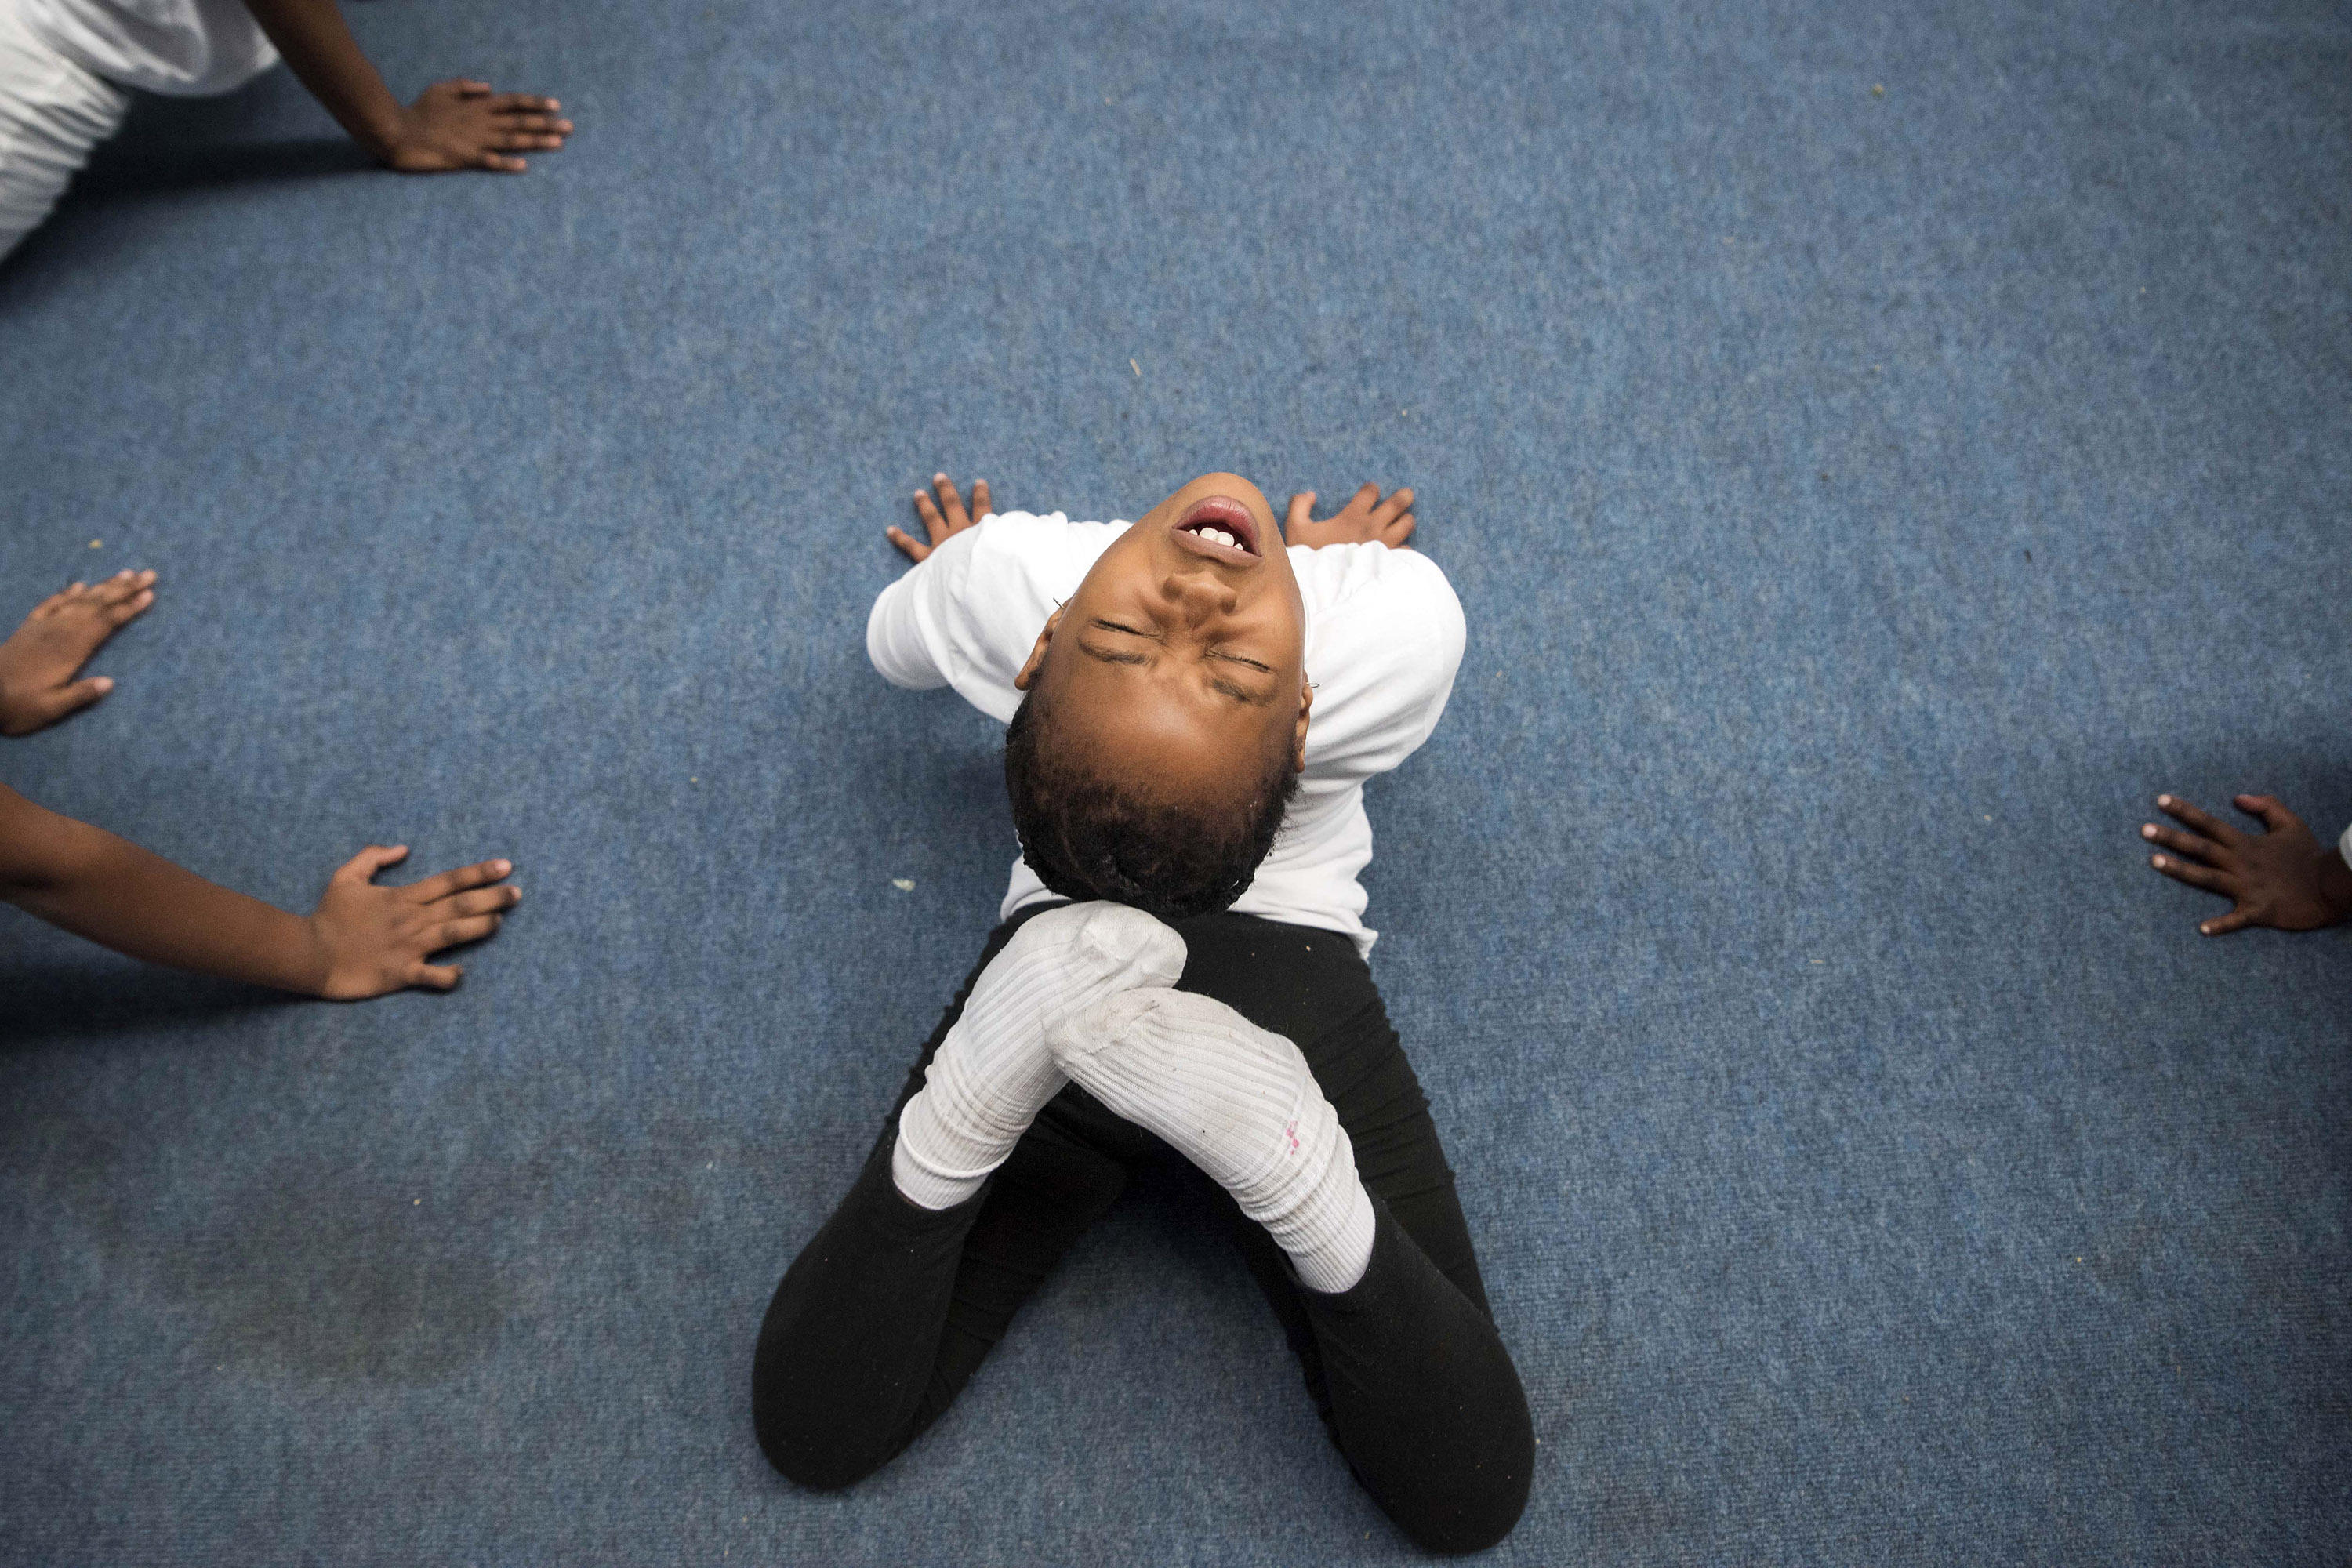 July 26, 2018: Mbali Bob pushes herself during warm-up, which includes stretching.